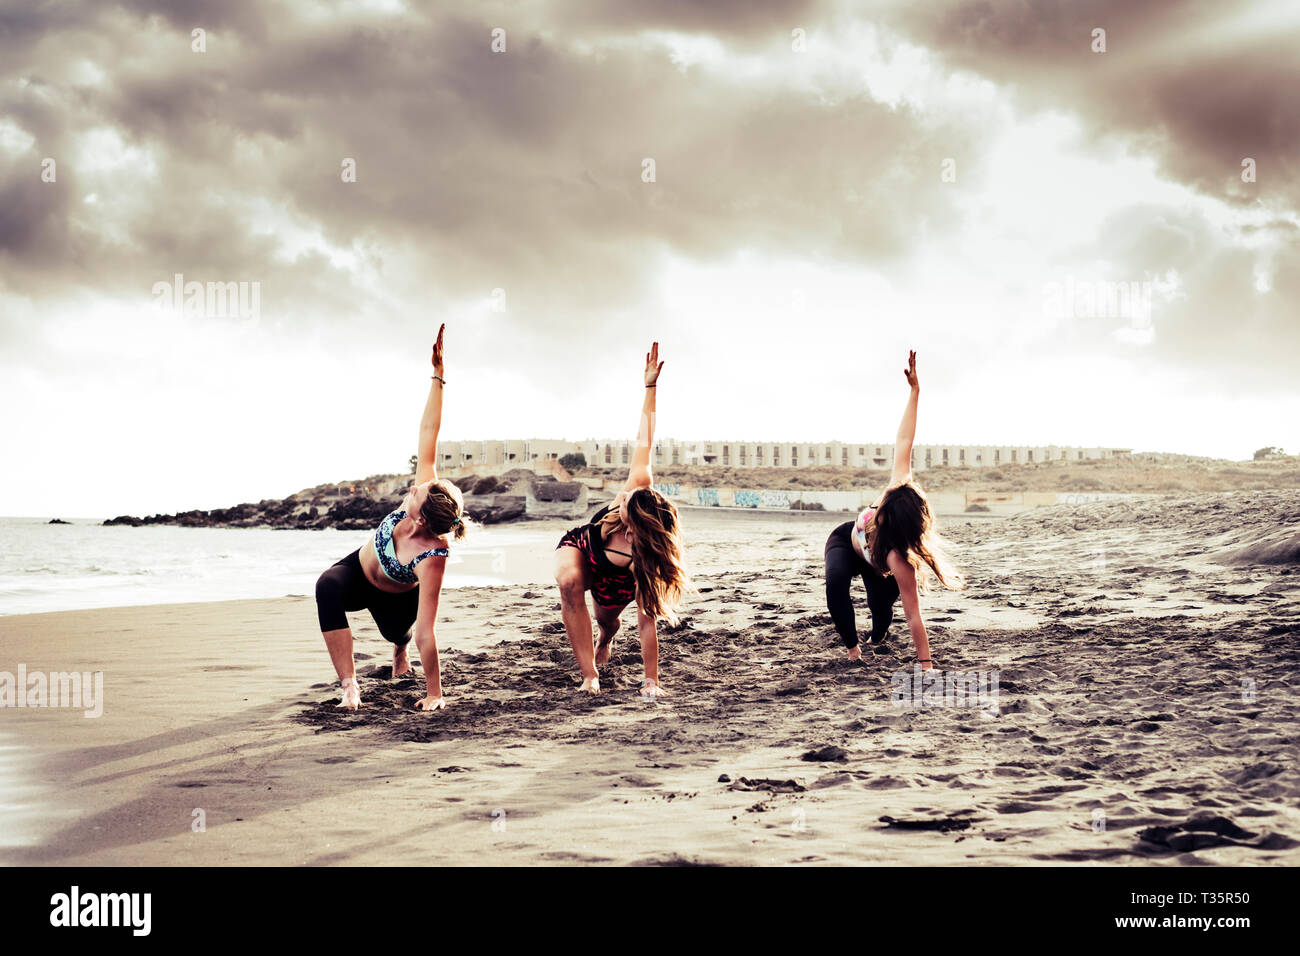 Pilates balance position three young active women at the beach doing sport fitness activity together under a dramatic cloudy sky - scenic image of peo Stock Photo